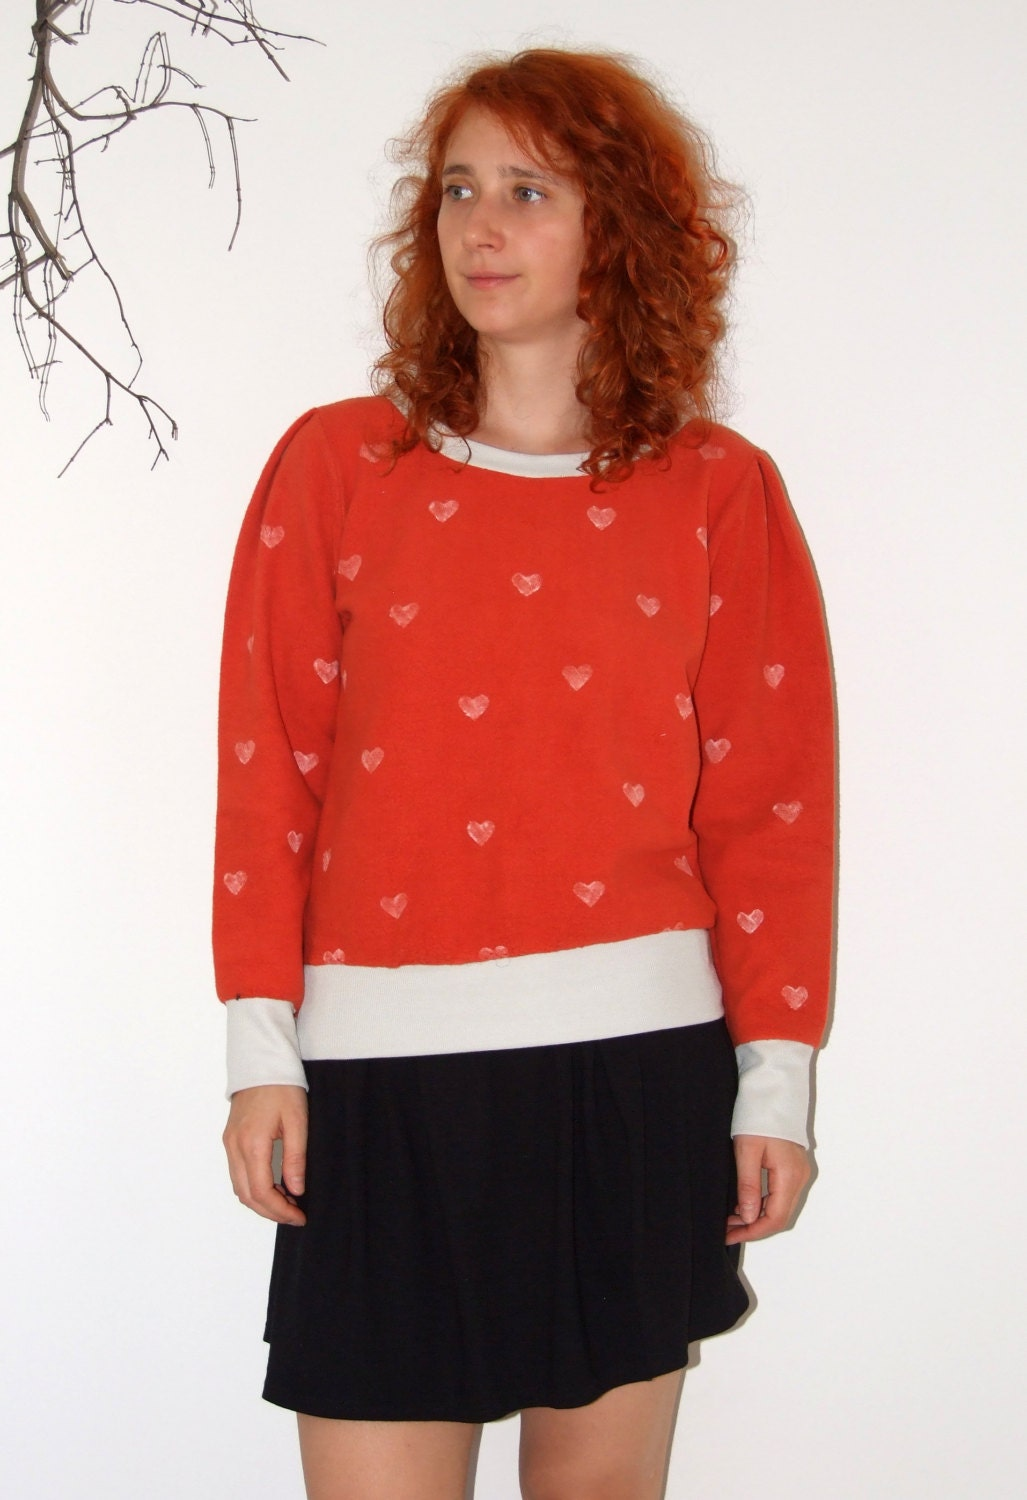 Handmade women s orange blouse sweater with white by robobambi